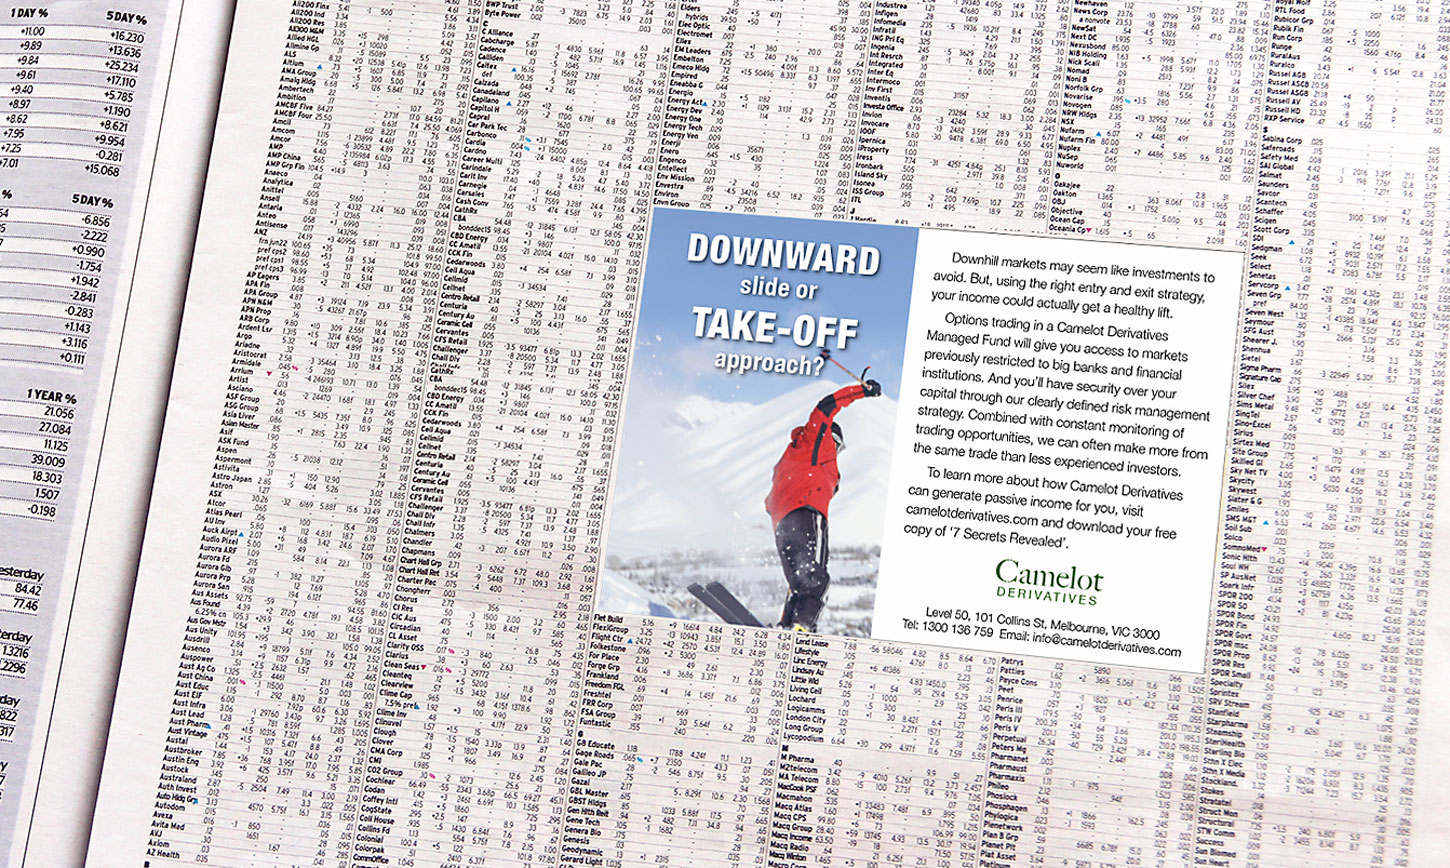 Camelot Investments ad in newspaper